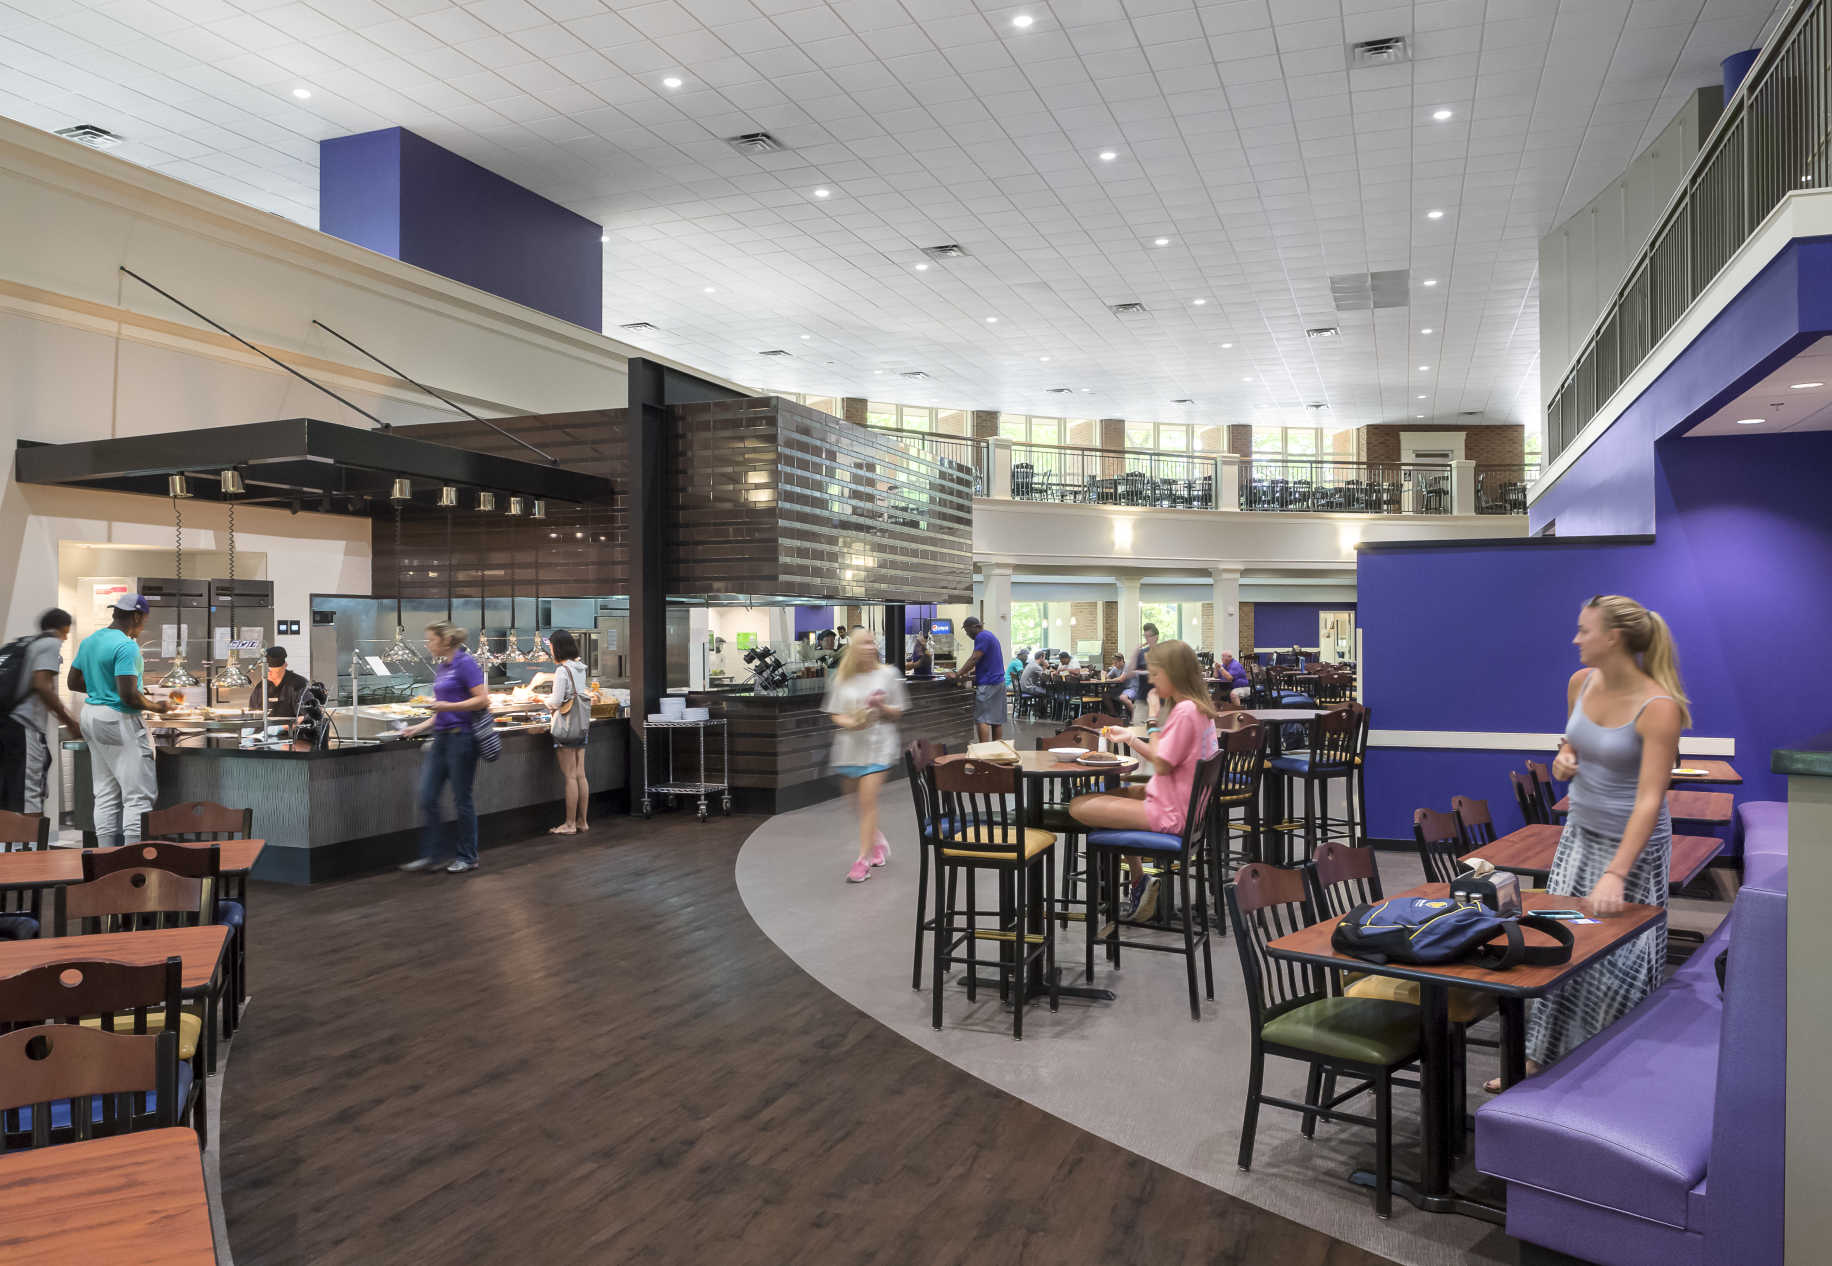 Charles e daniel dining hall dp3 architects for Dining hall design